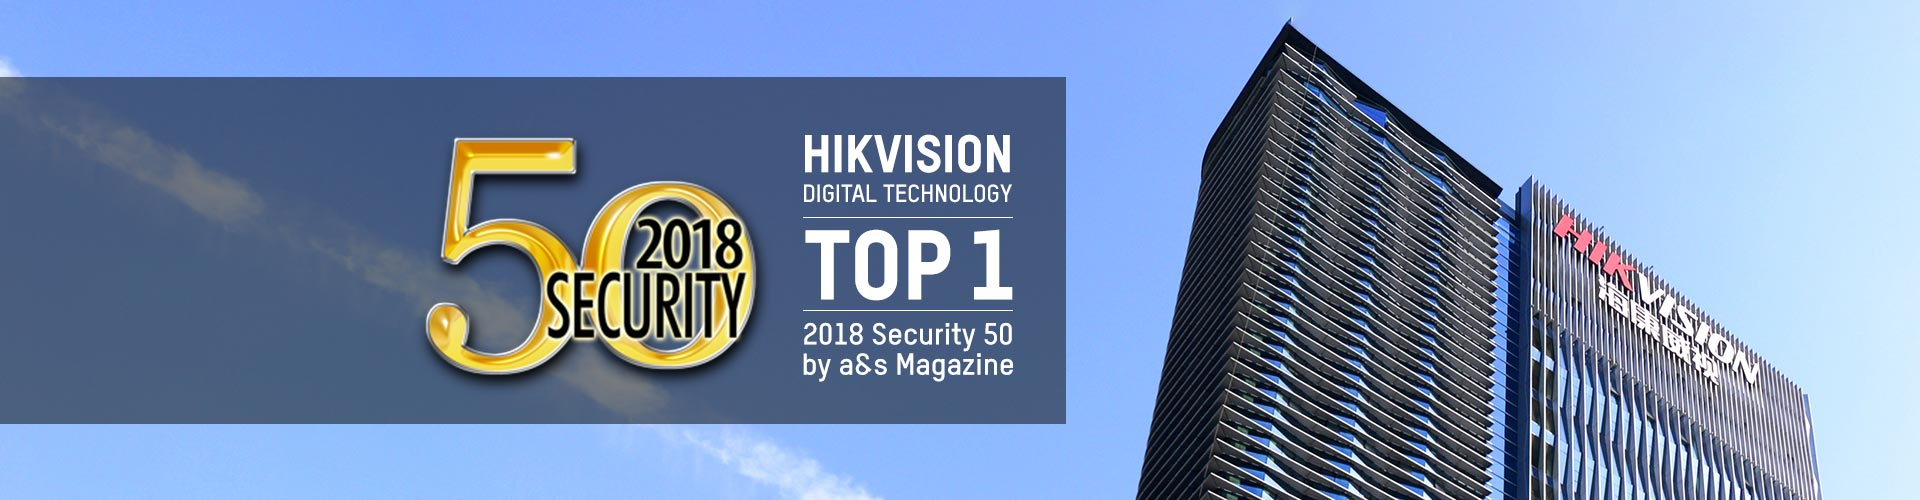 HIKVISION top 1 - Security 50